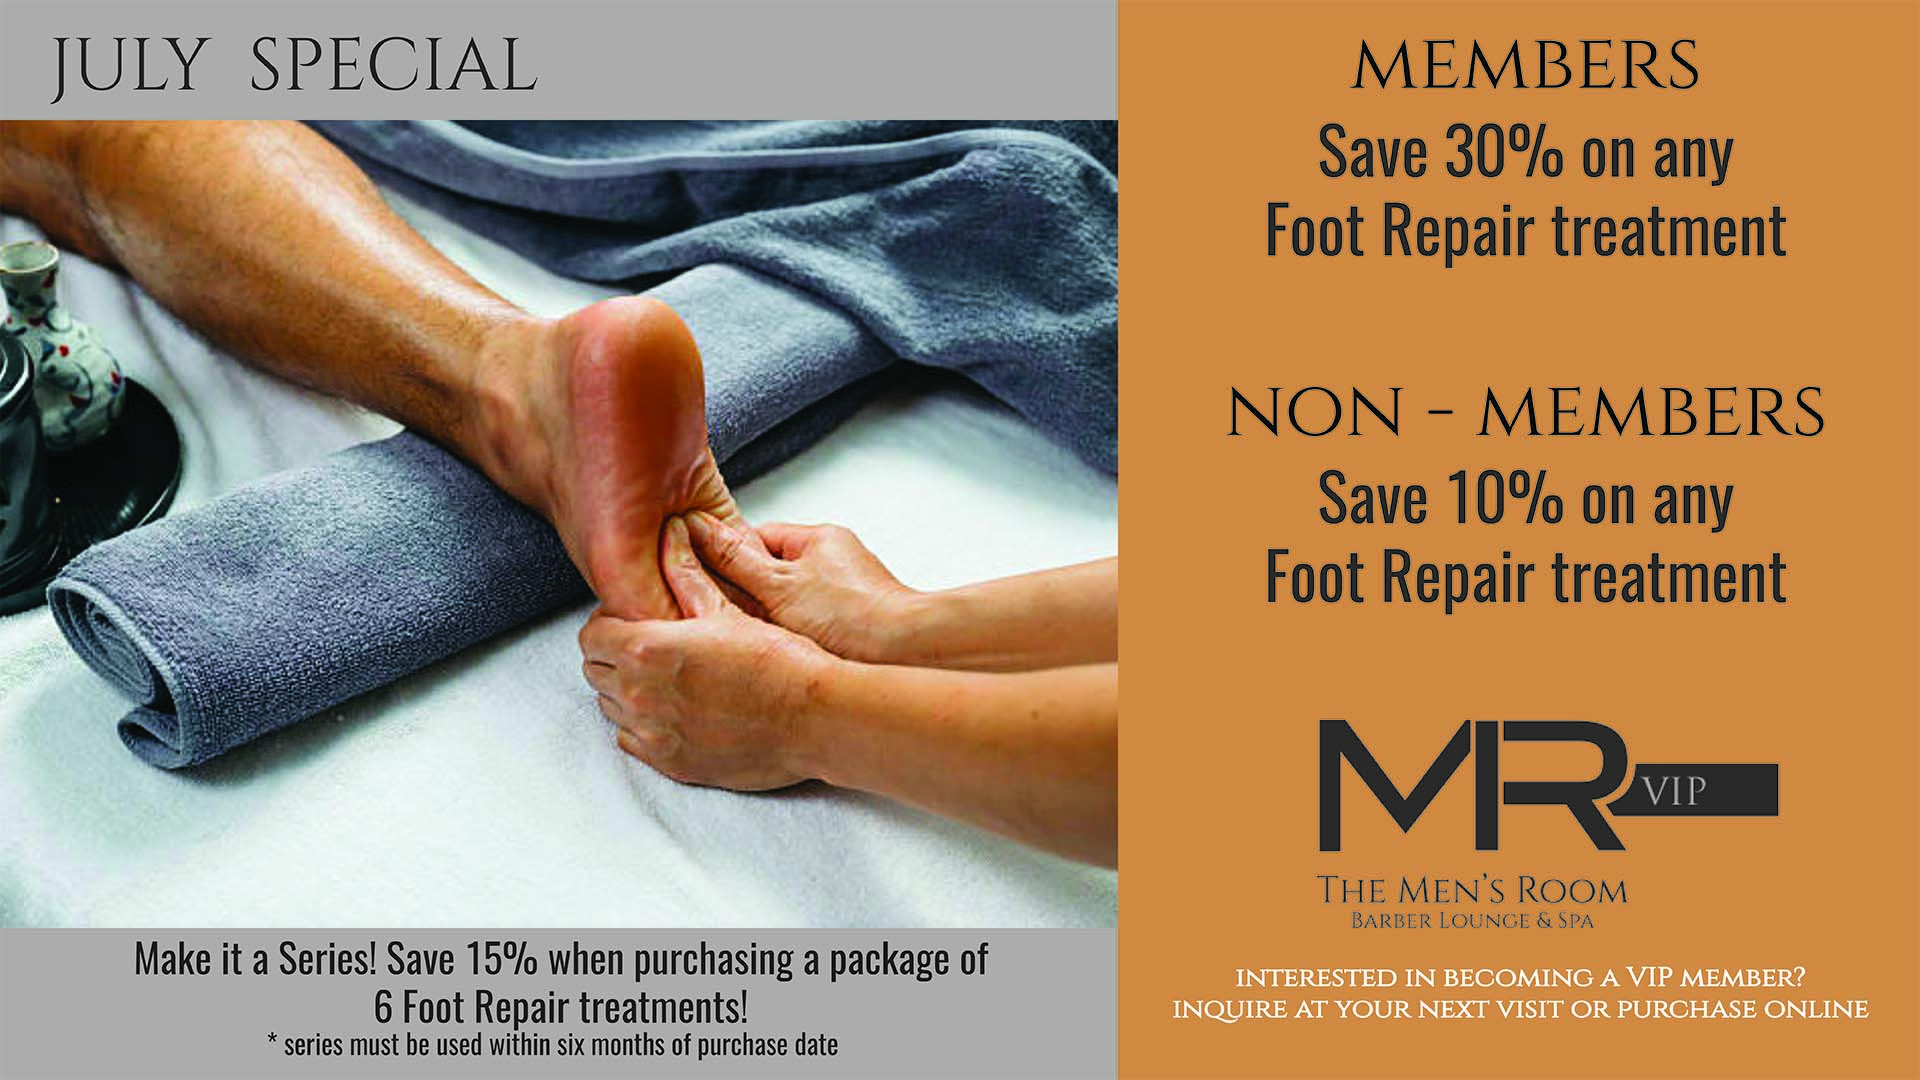 Foot Repair Treatment